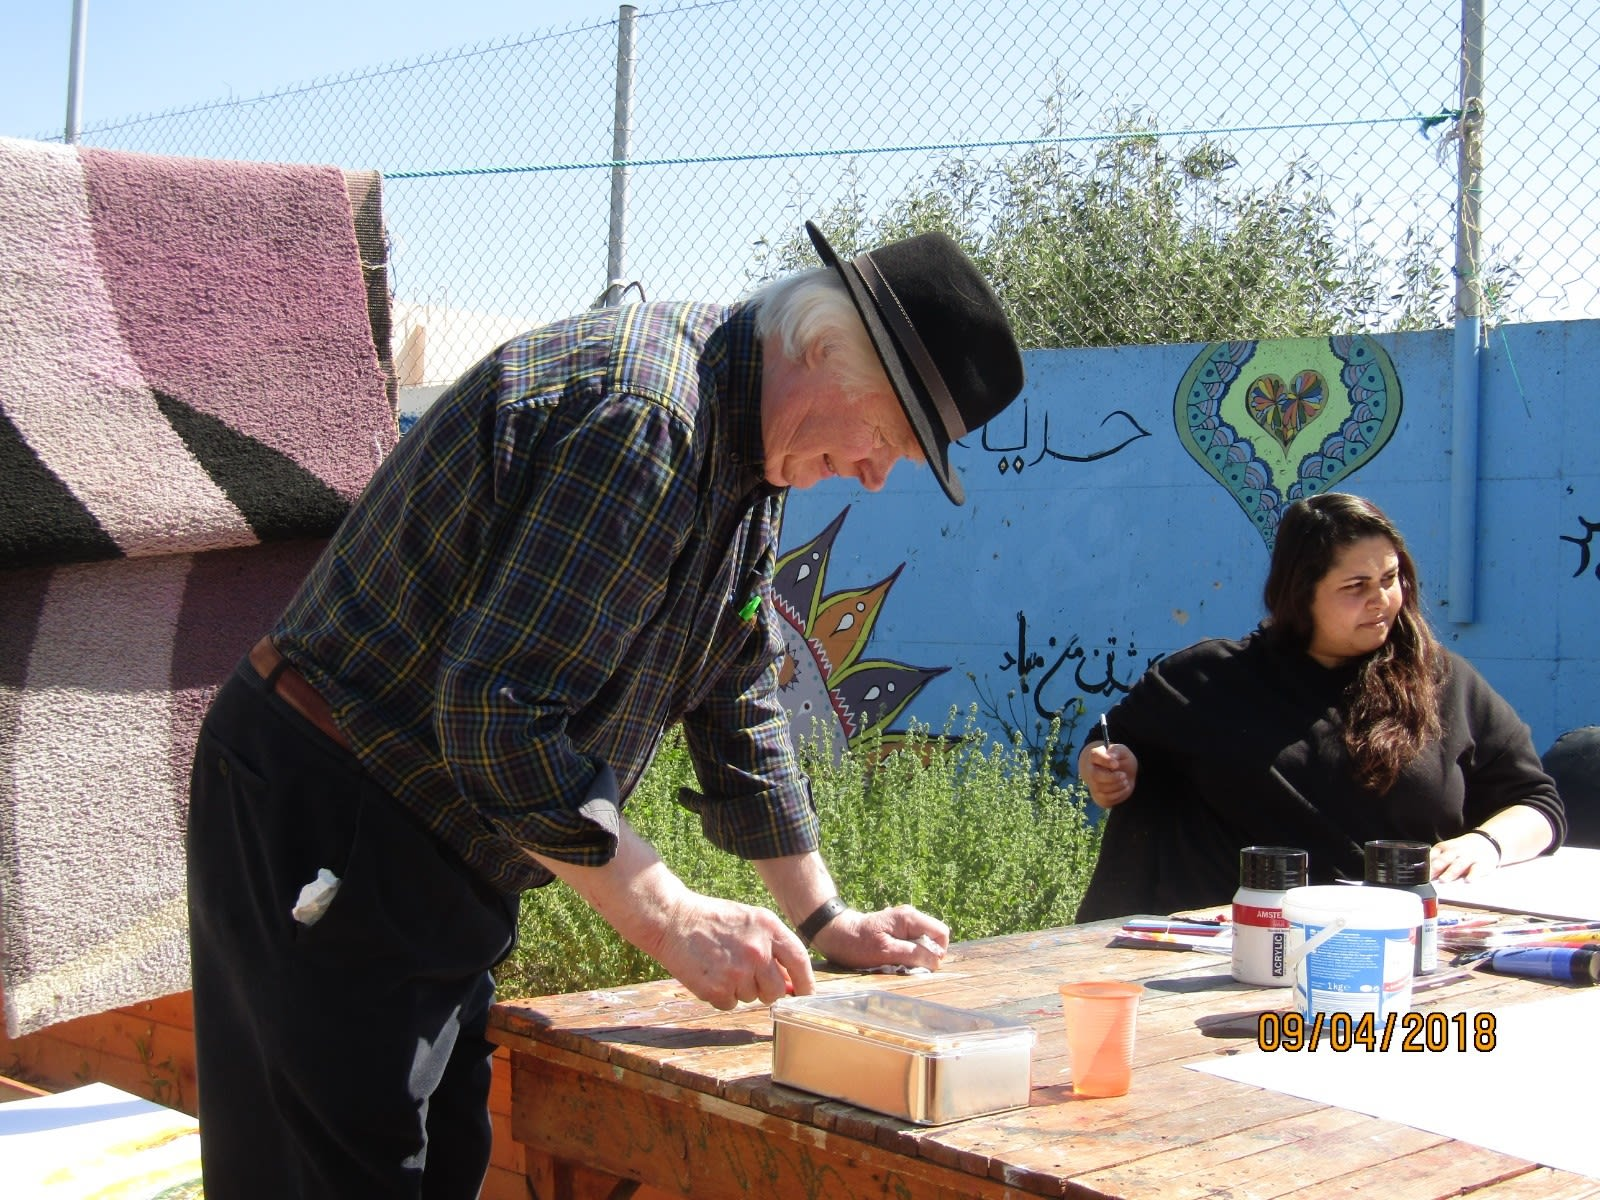 John Behan working with refugees at Eleonas camp in Athens during an earlier visit this year.